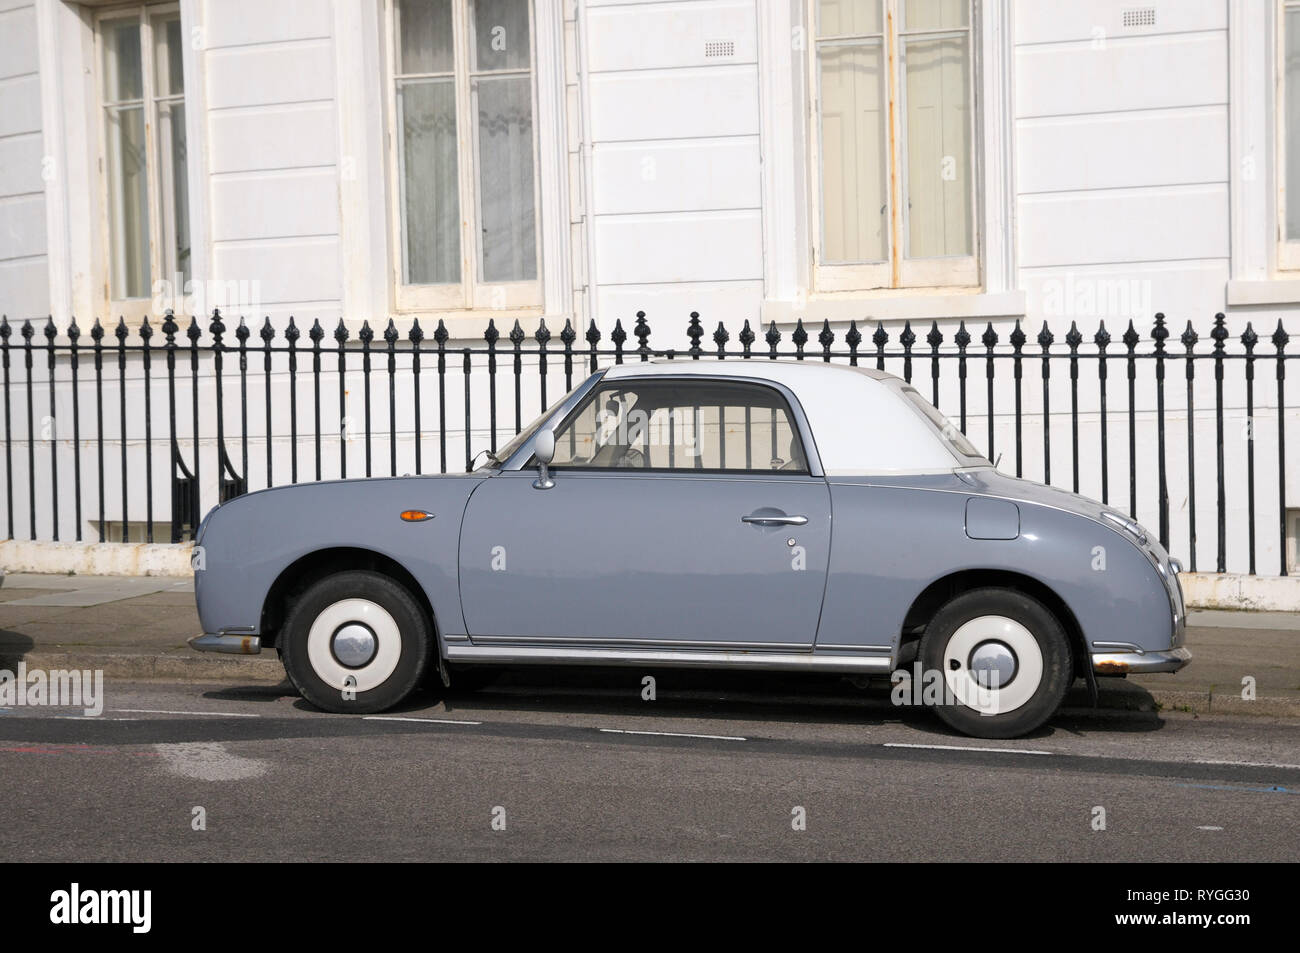 A retro-styled Lapis Grey Nissan Figaro car parked in Brighton, East Sussex, England, UK - Stock Image